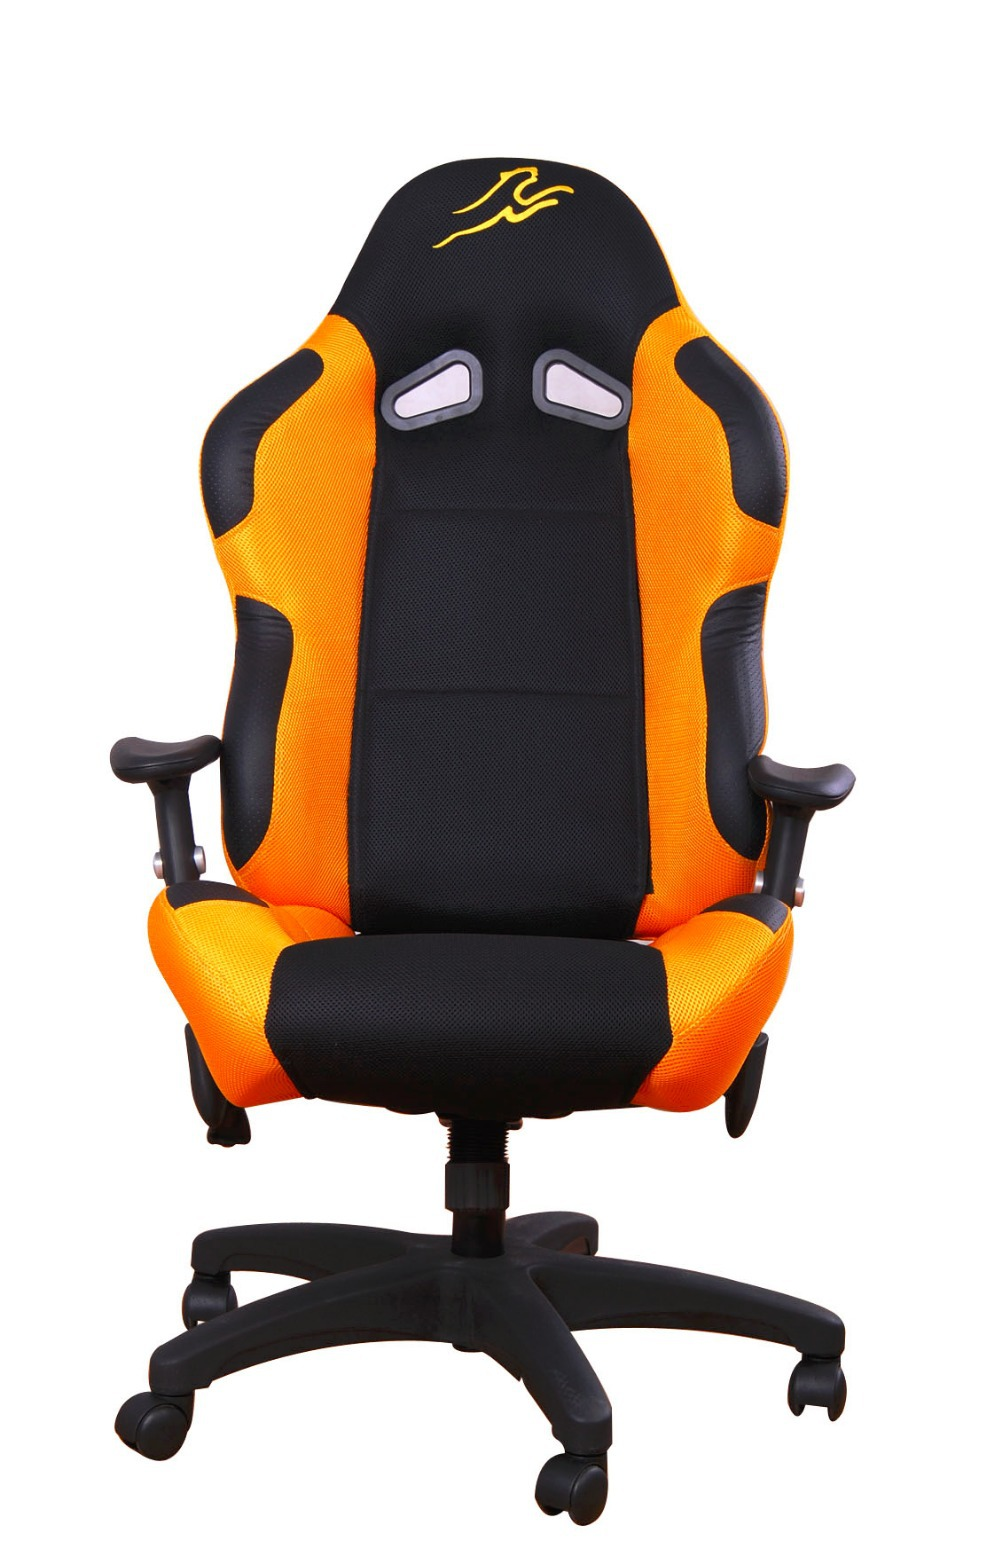 modern racing office chair ergonomic executive chair car